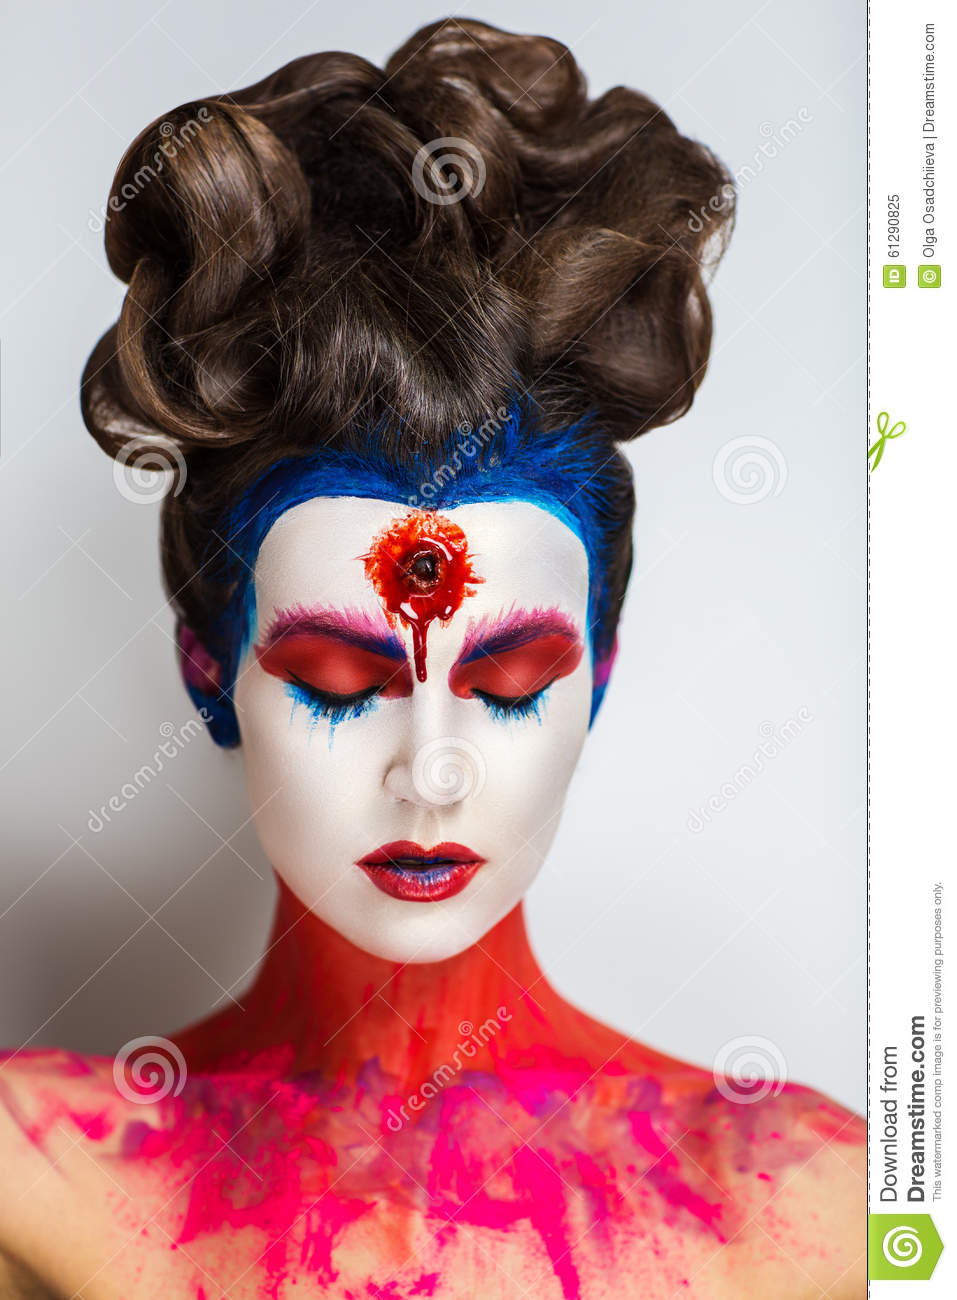 Crazy Make Up Art Stock Photo - Image: 61290825